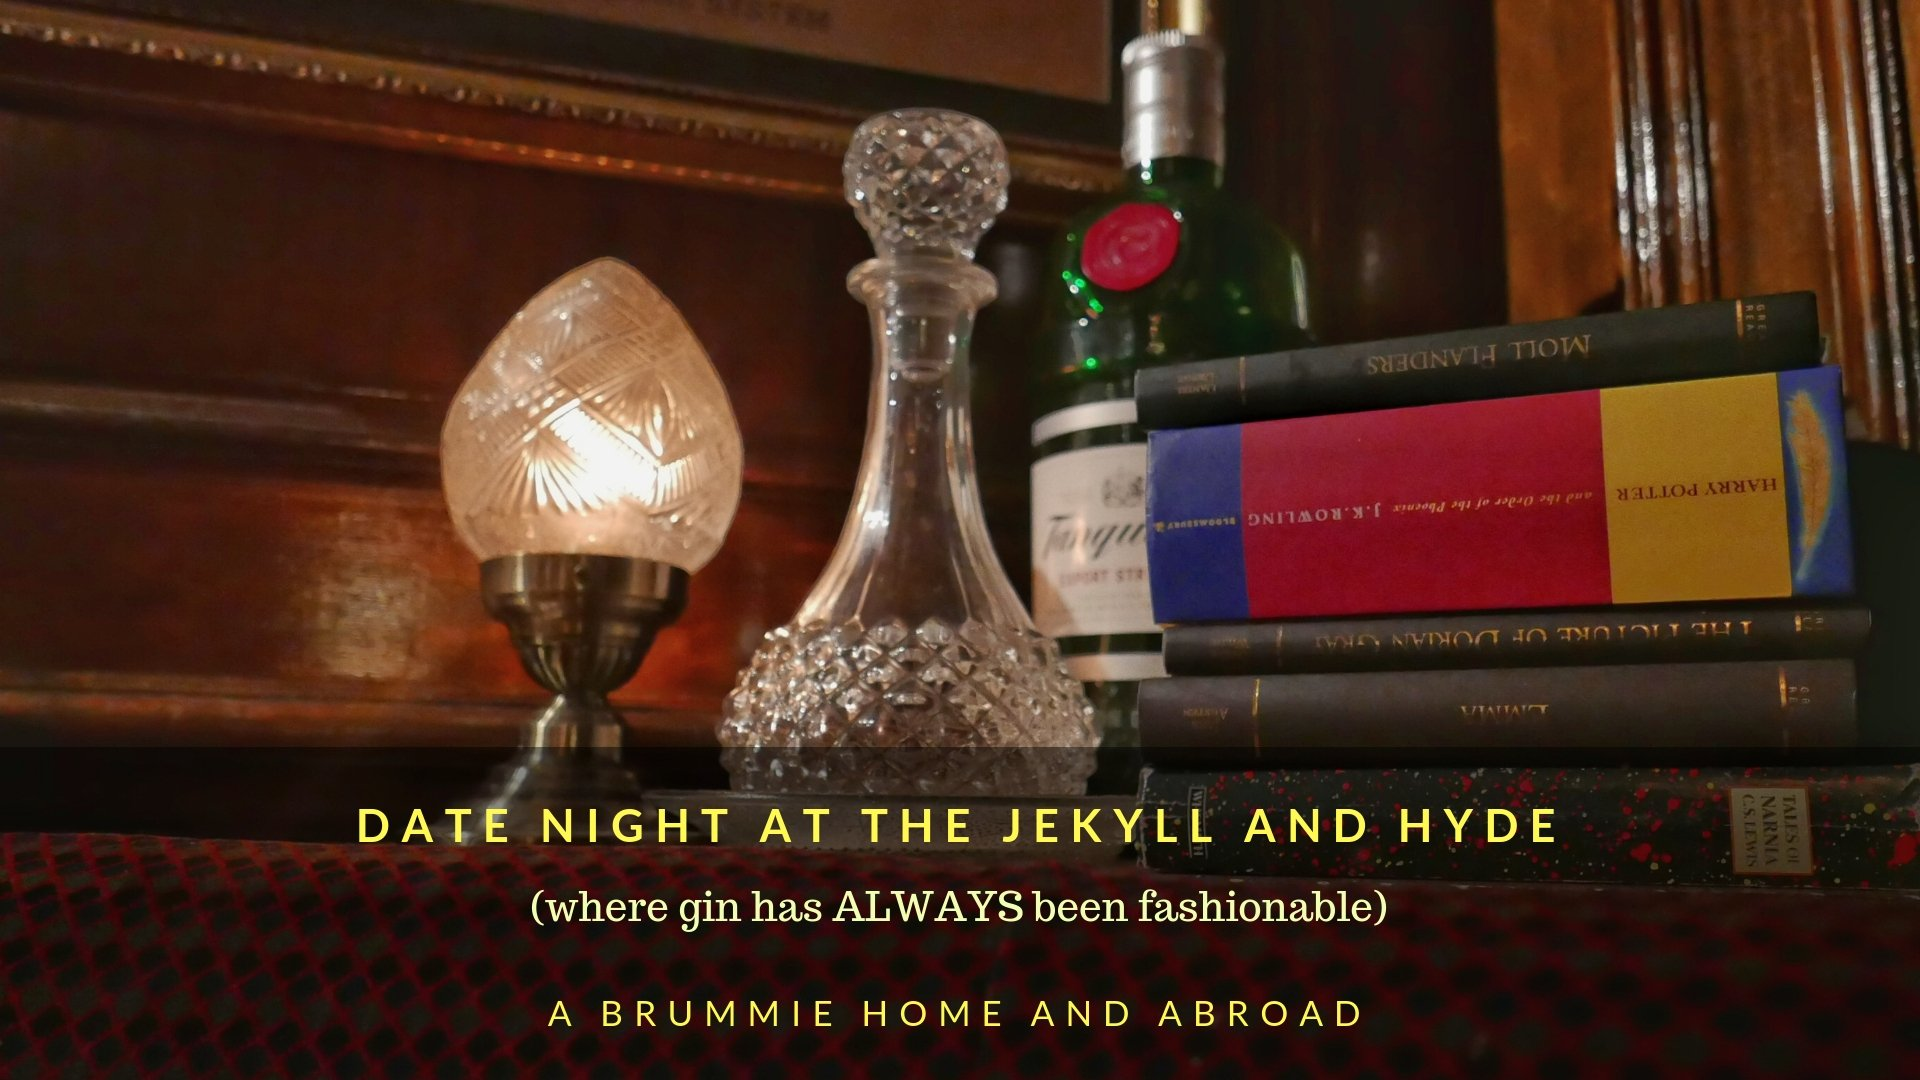 Date Night at the Jekyll & Hyde (where gin has ALWAYS been fashionable) : A Brummie Home and Abroad